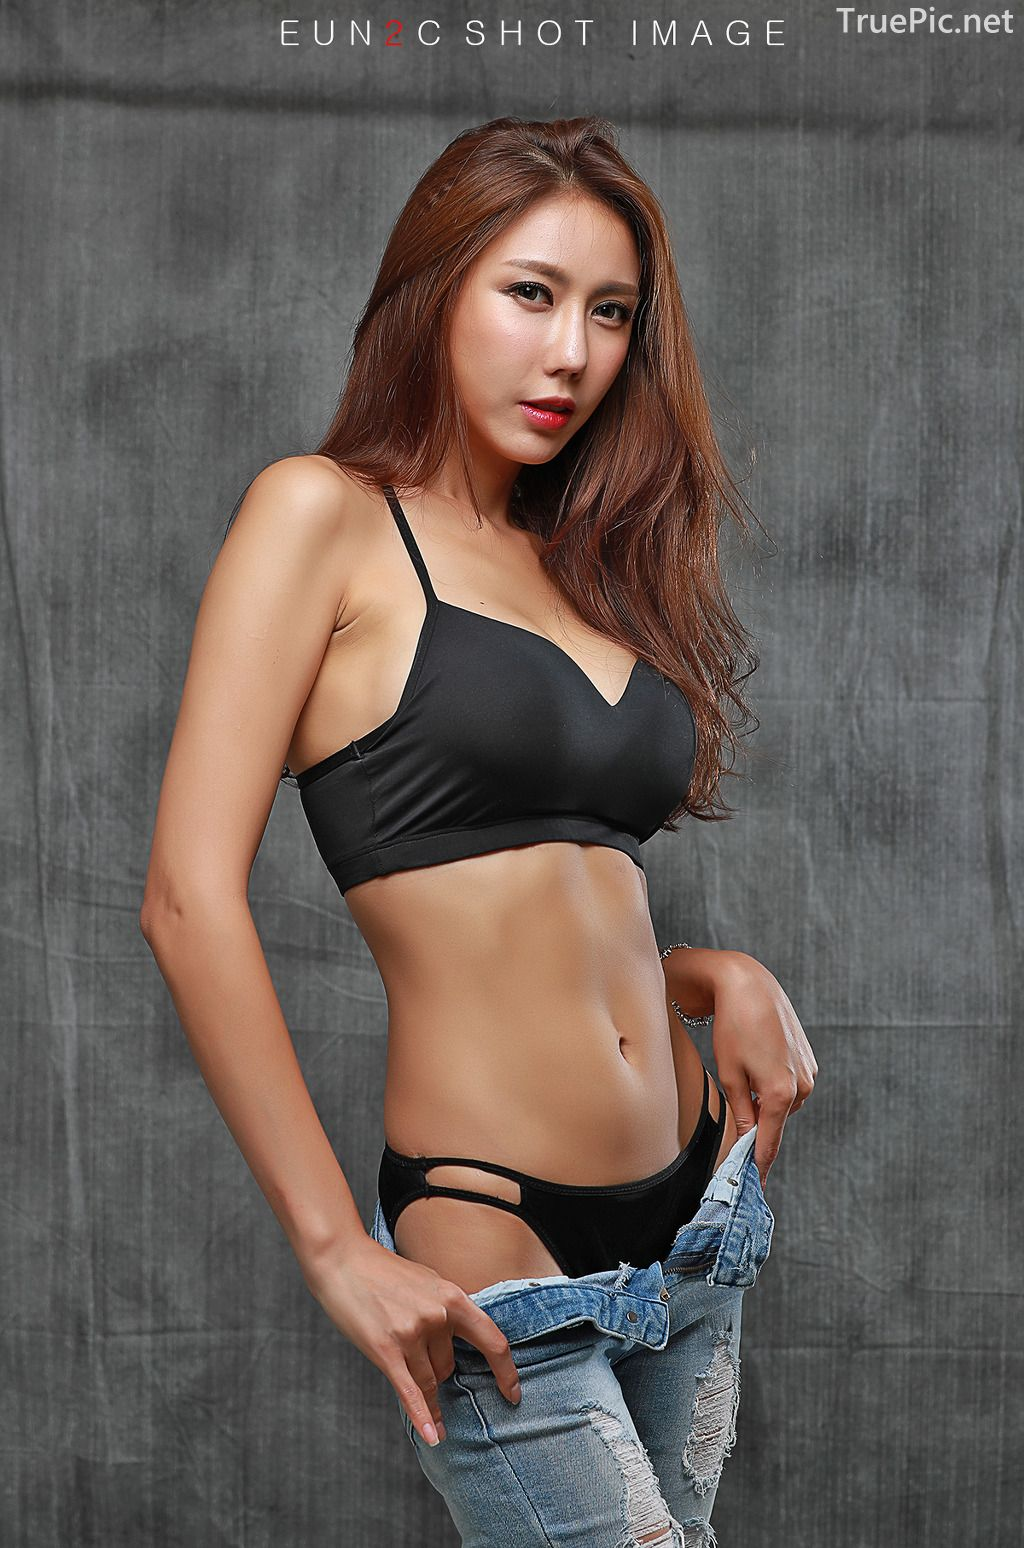 Image-Korean-model-Choi-Ye-Rok-Back-Lingerie-and-Jean-TruePic.net- Picture-6